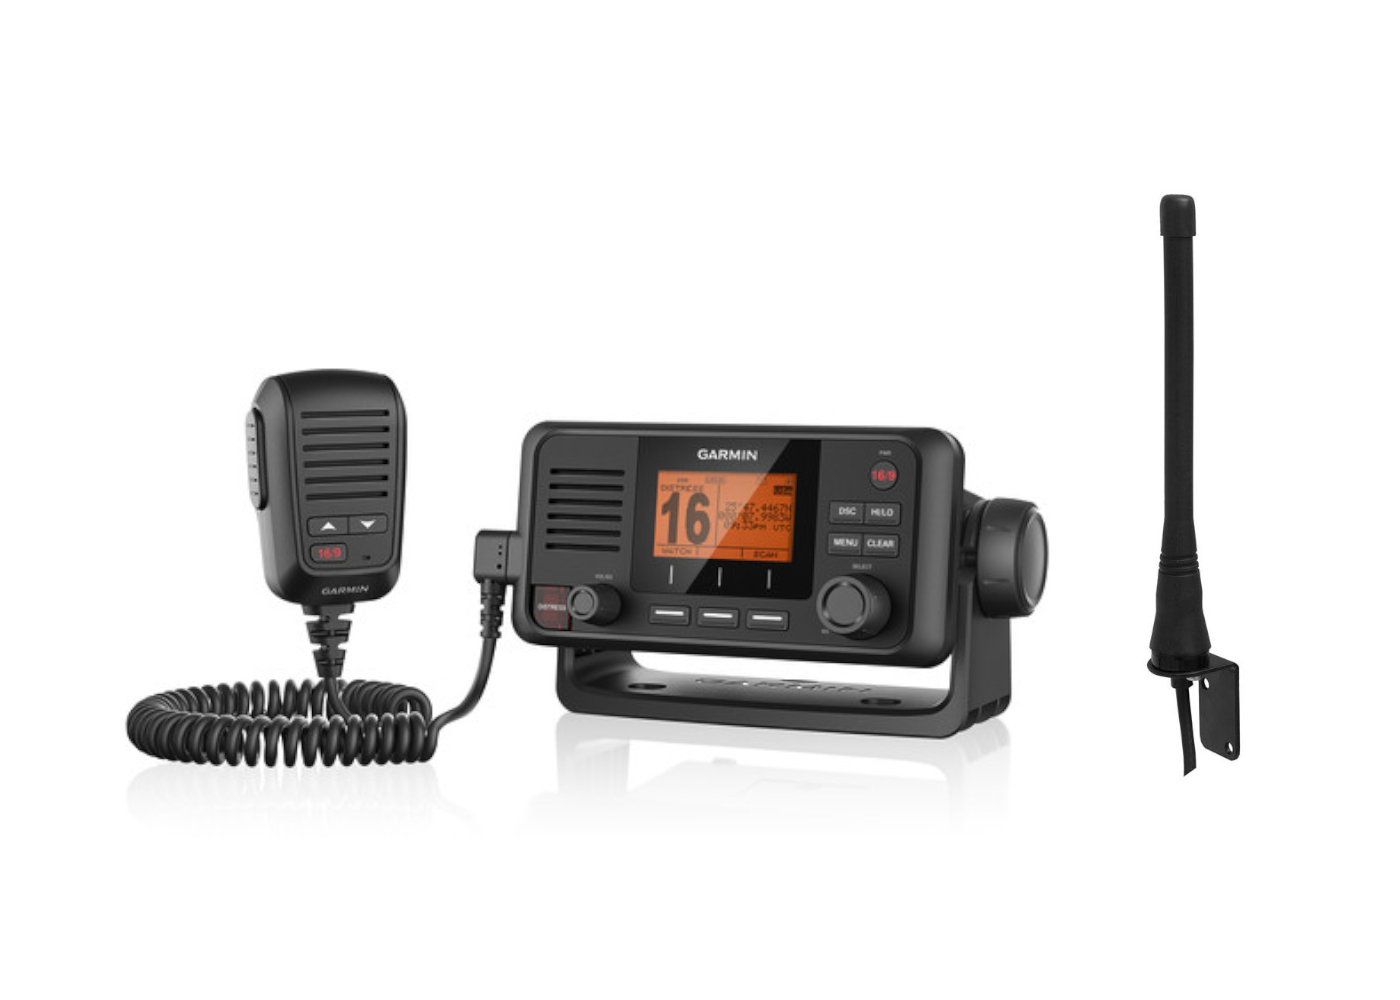 Garmin VHF115i Marine Radio & Antenna Kit